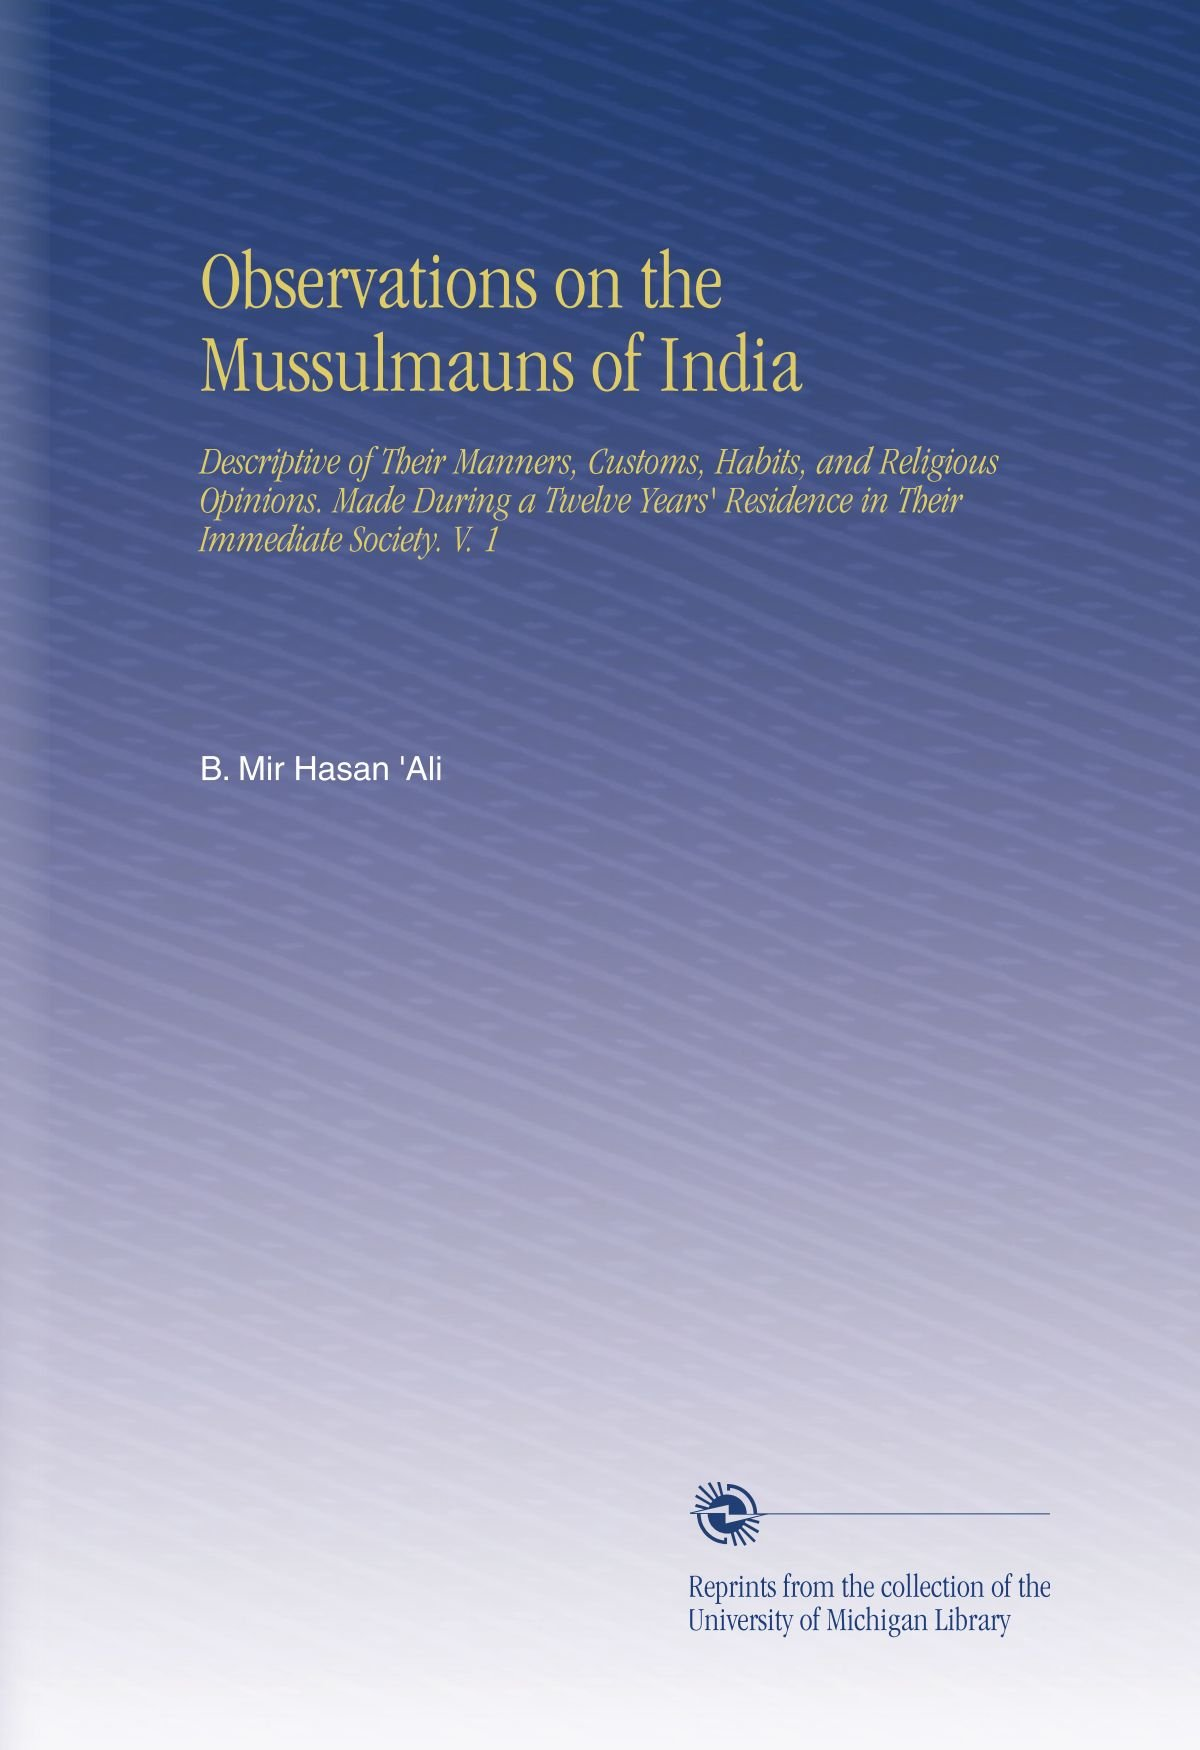 Download Observations on the Mussulmauns of India: Descriptive of Their Manners, Customs, Habits, and Religious Opinions. Made During a Twelve Years' Residence in Their Immediate Society. V.  1 PDF